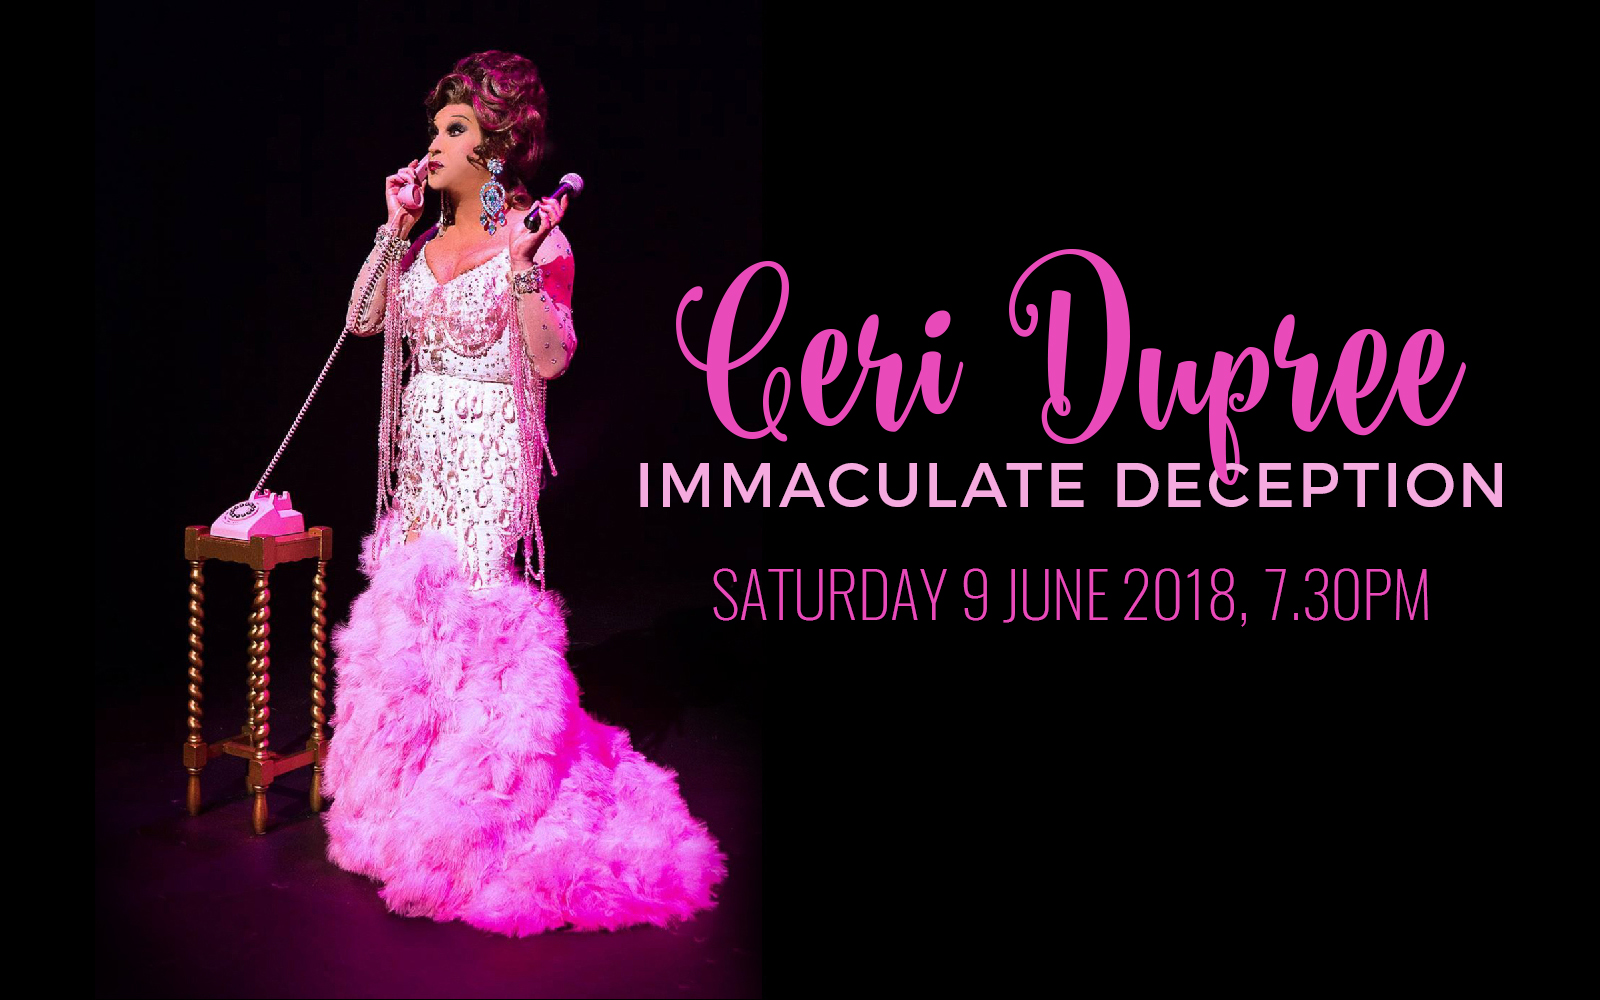 The fabulous Ceri Dupree returns to the Torch Theatre with a new one man twenty-one woman show!